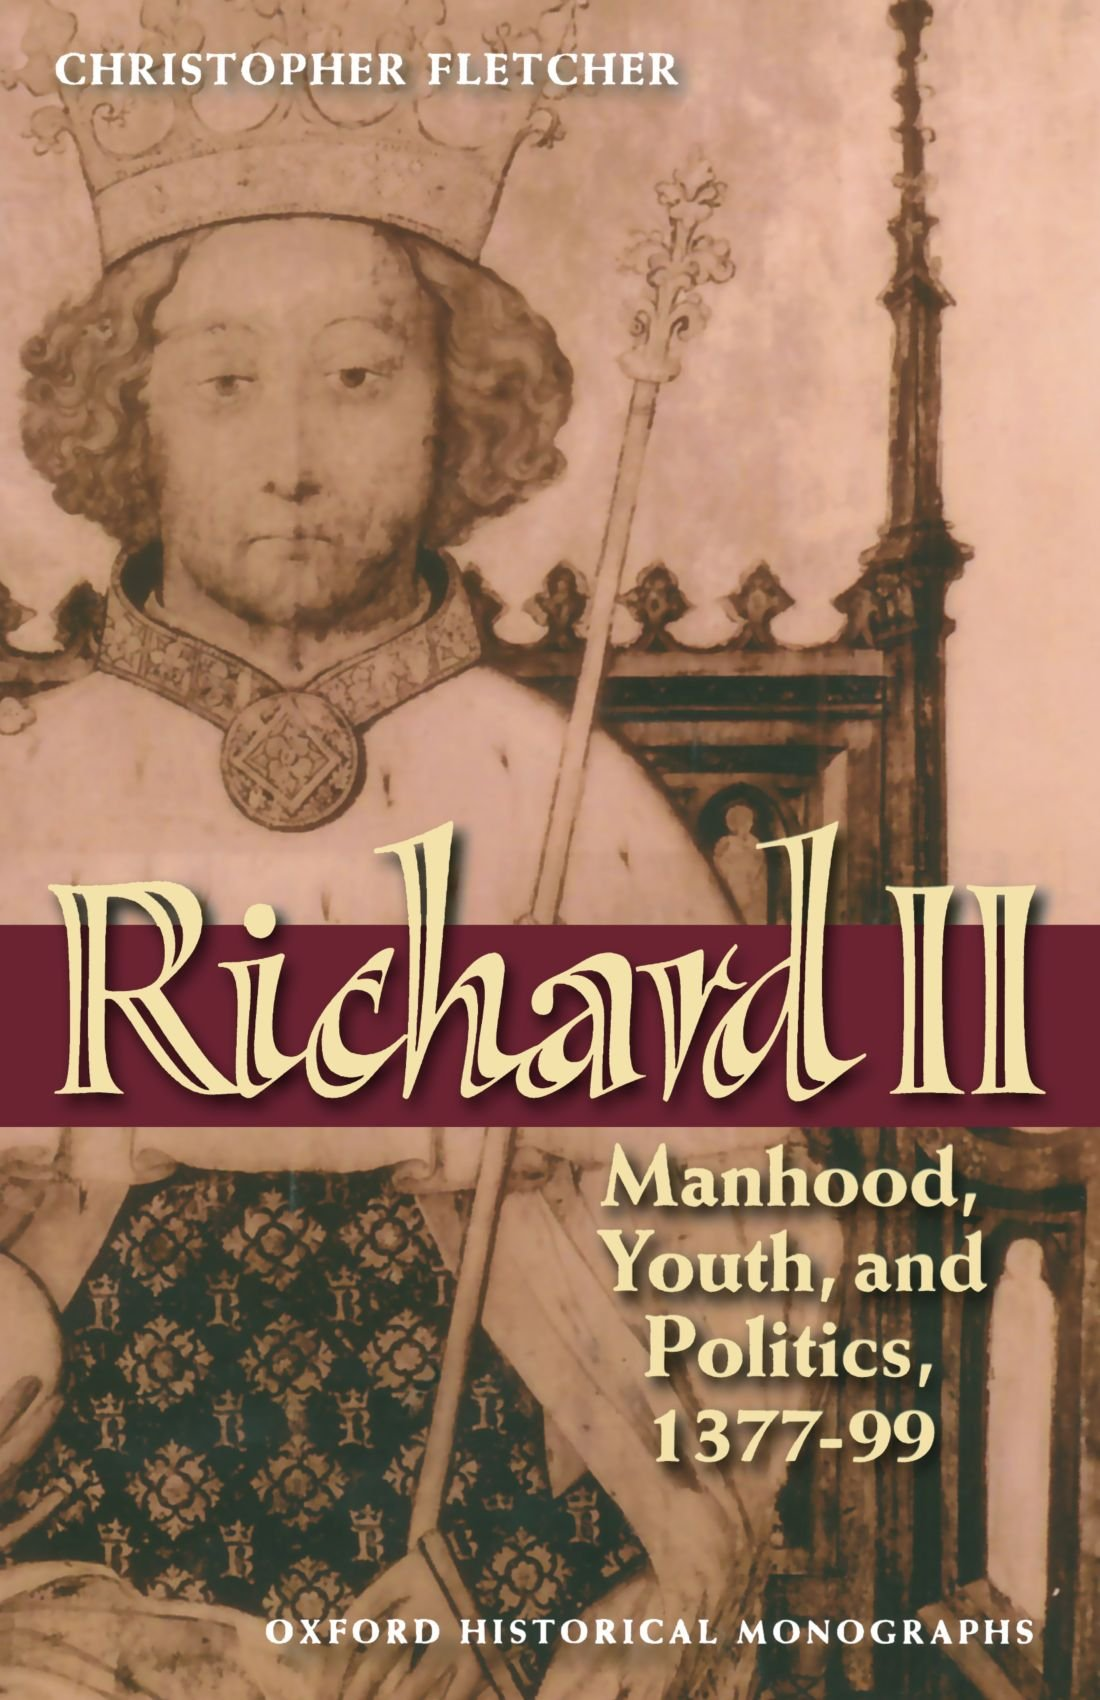 Richard II: Manhood, Youth, and Politics 1377-99 (Oxford Historical Monographs) by Oxford University Press